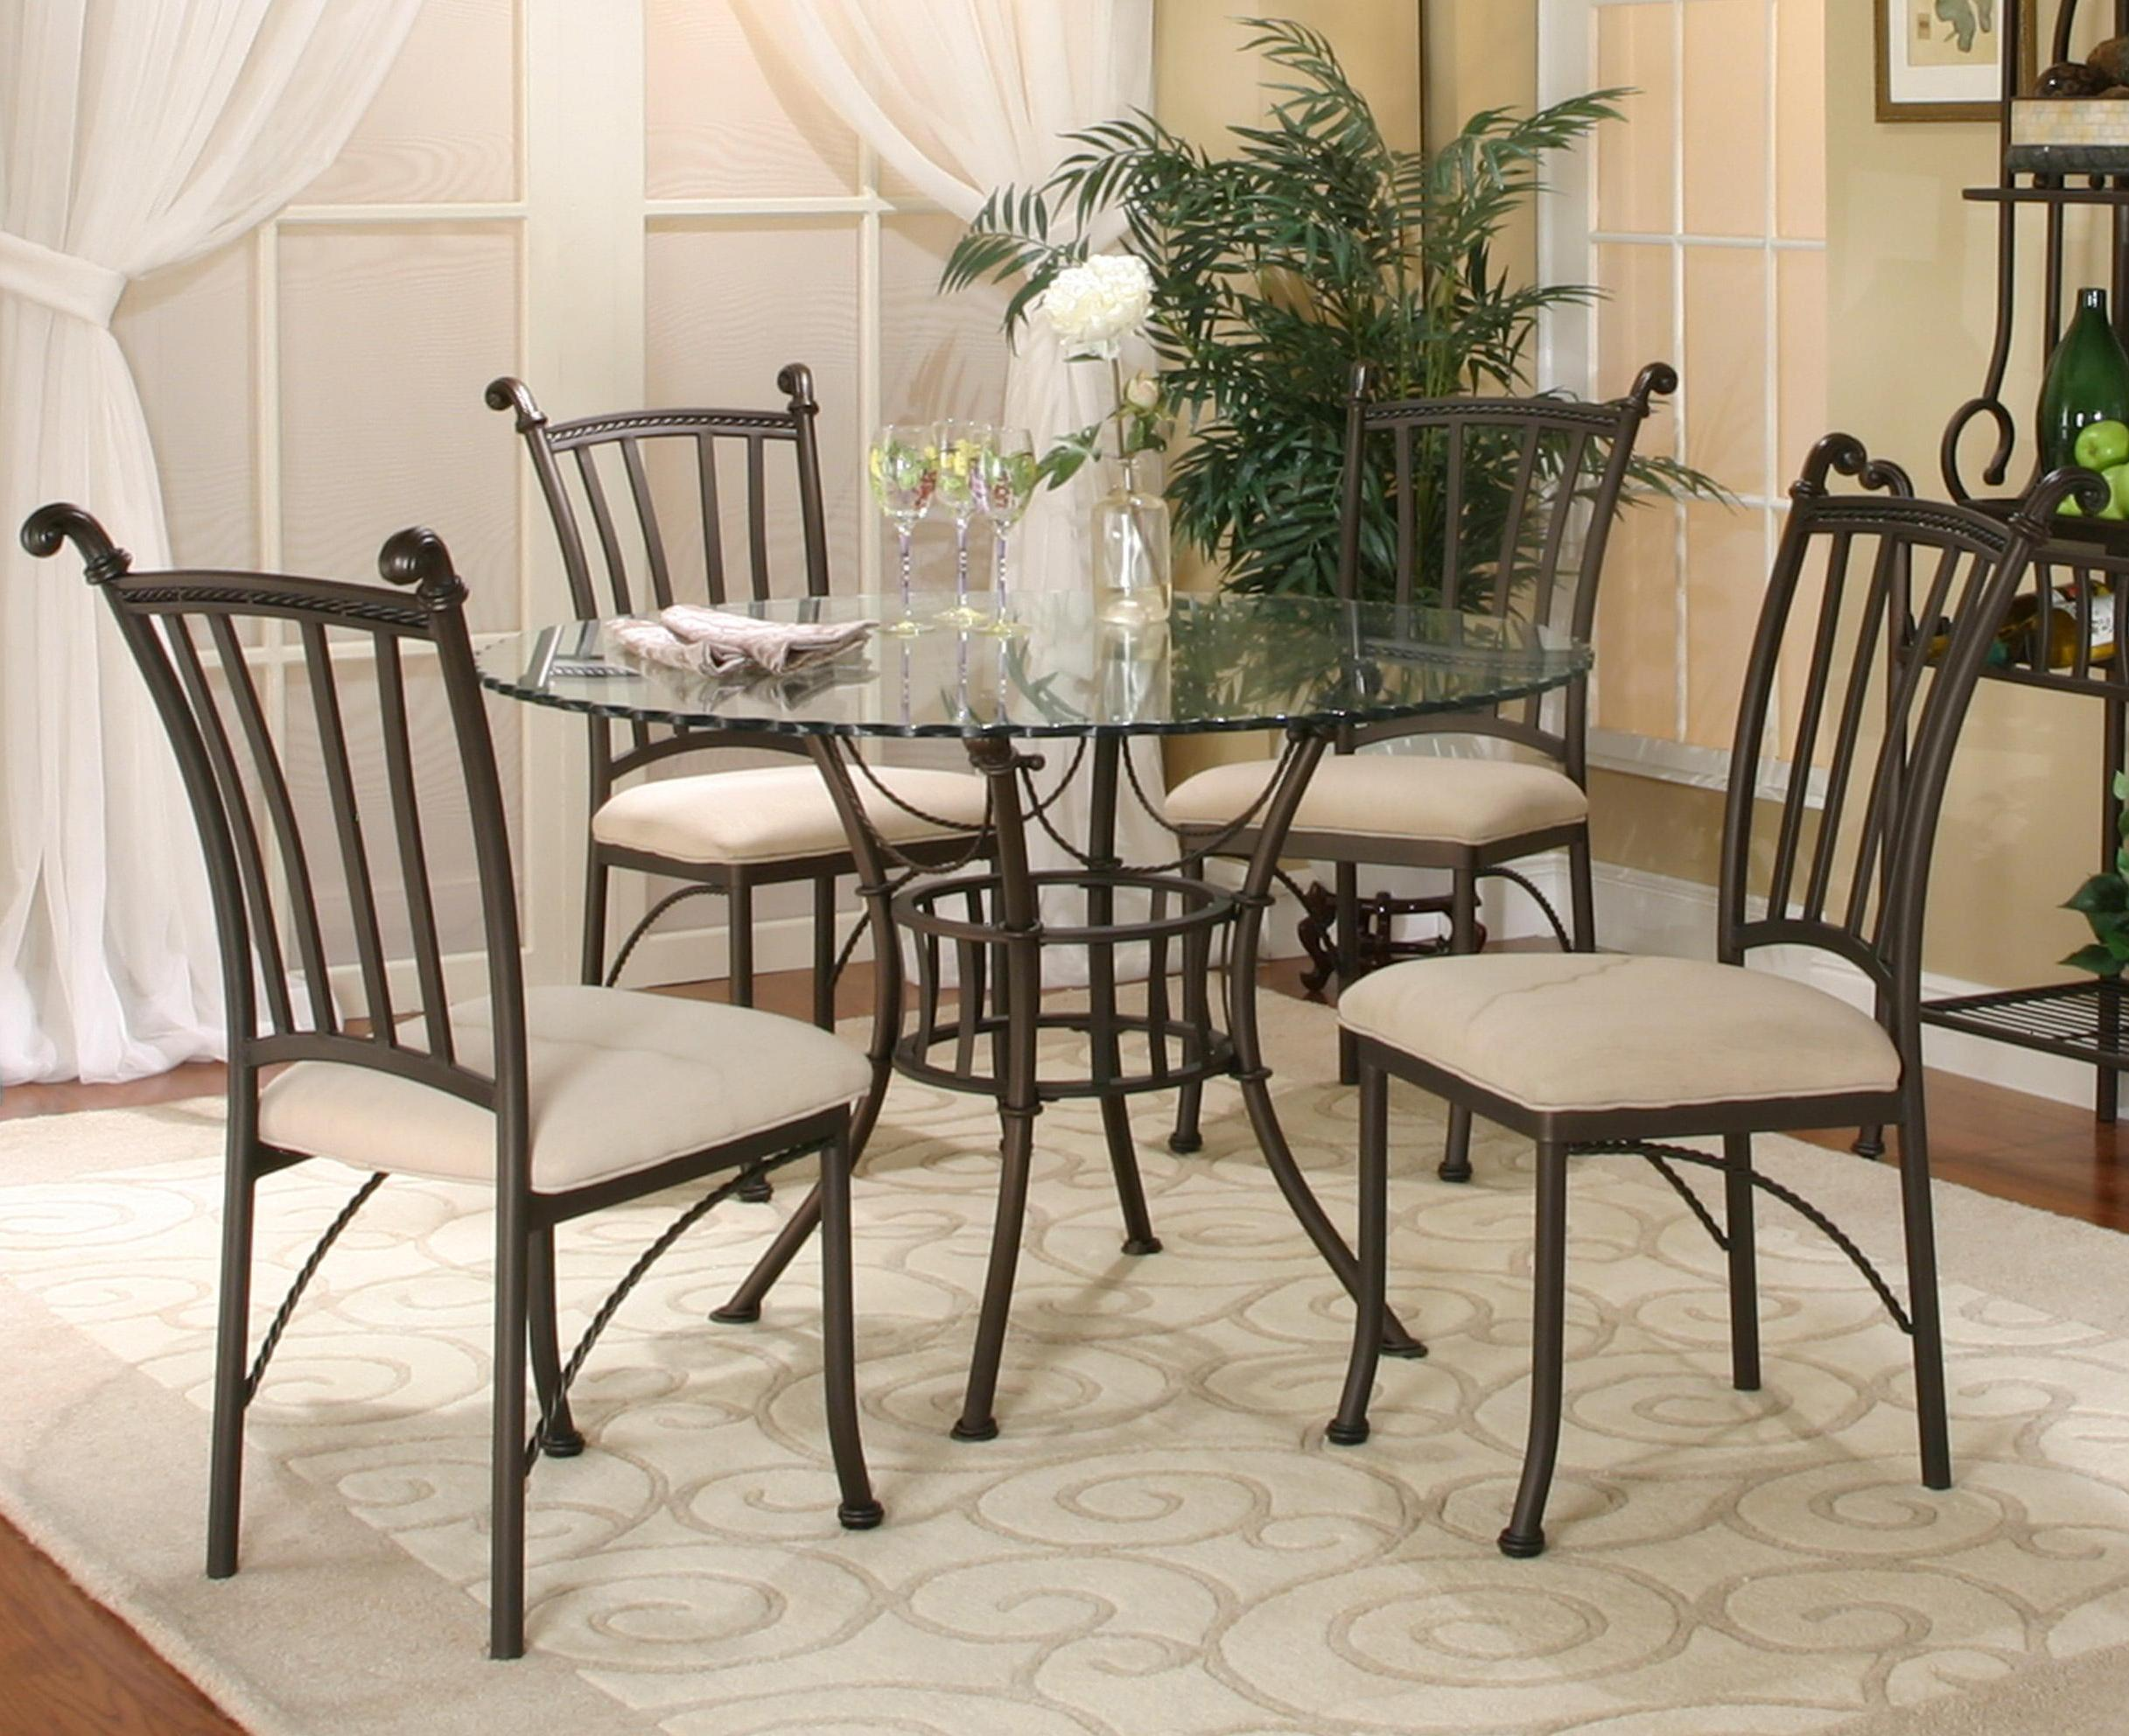 piece round glass table with chairs royal furniture dining 5 piece